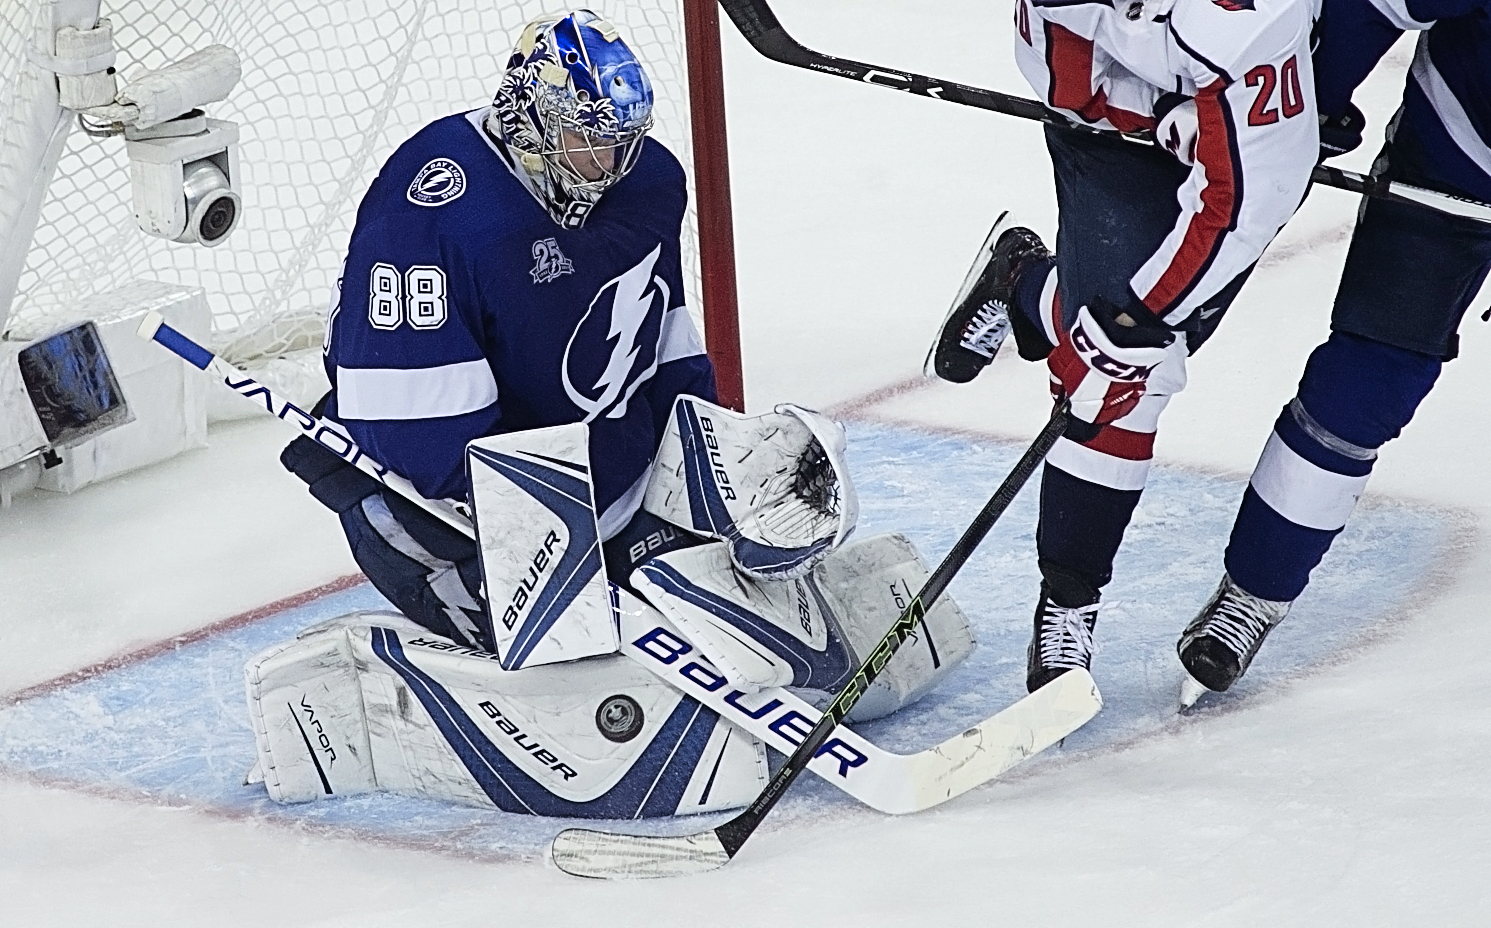 Vasilevskiy starred in net for the Lightning./CARMEN MANDATO